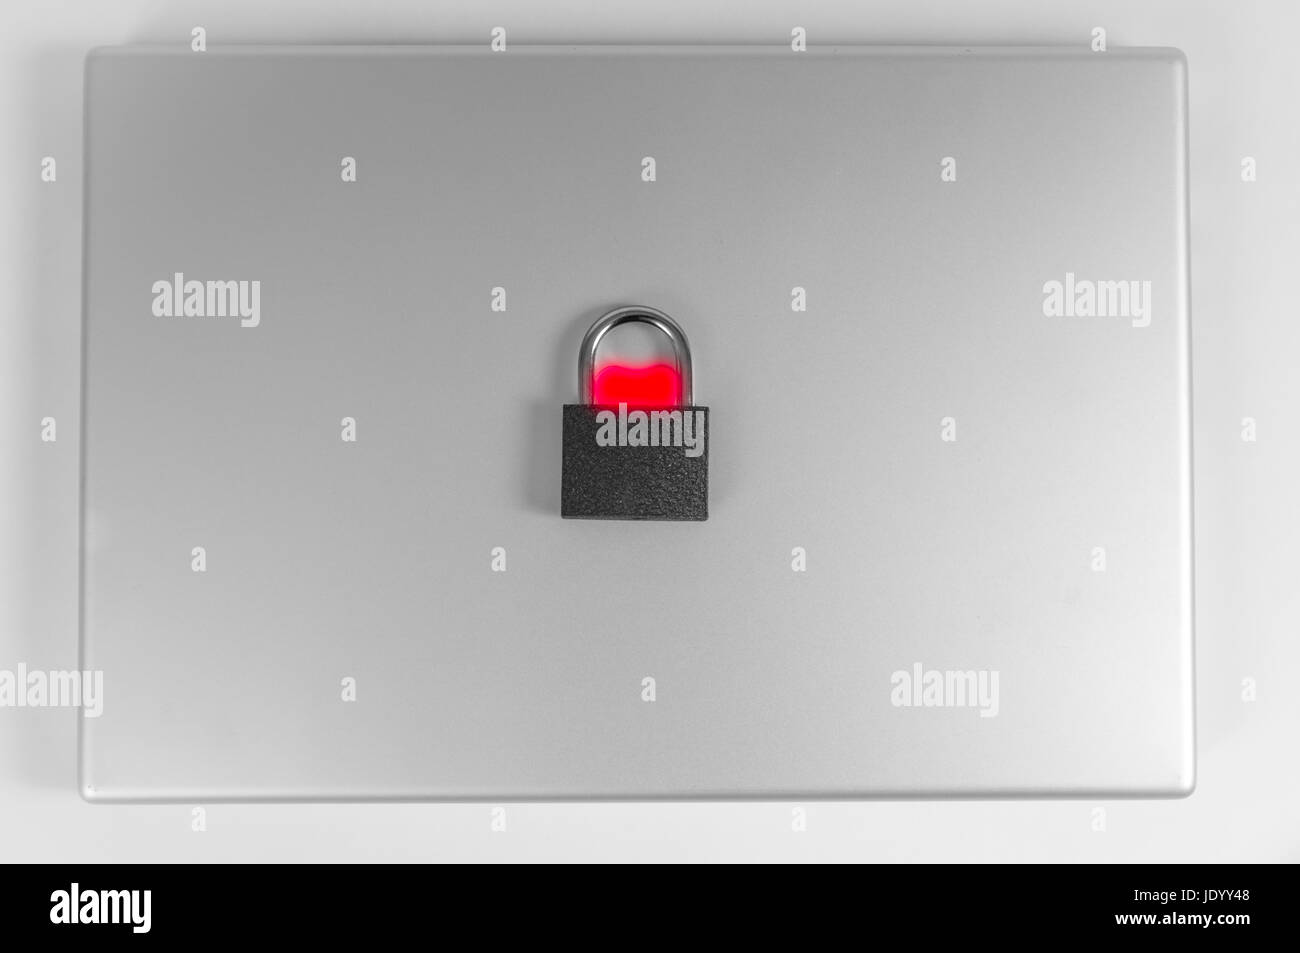 locked computer safe from virus or malware attack Stock Photo